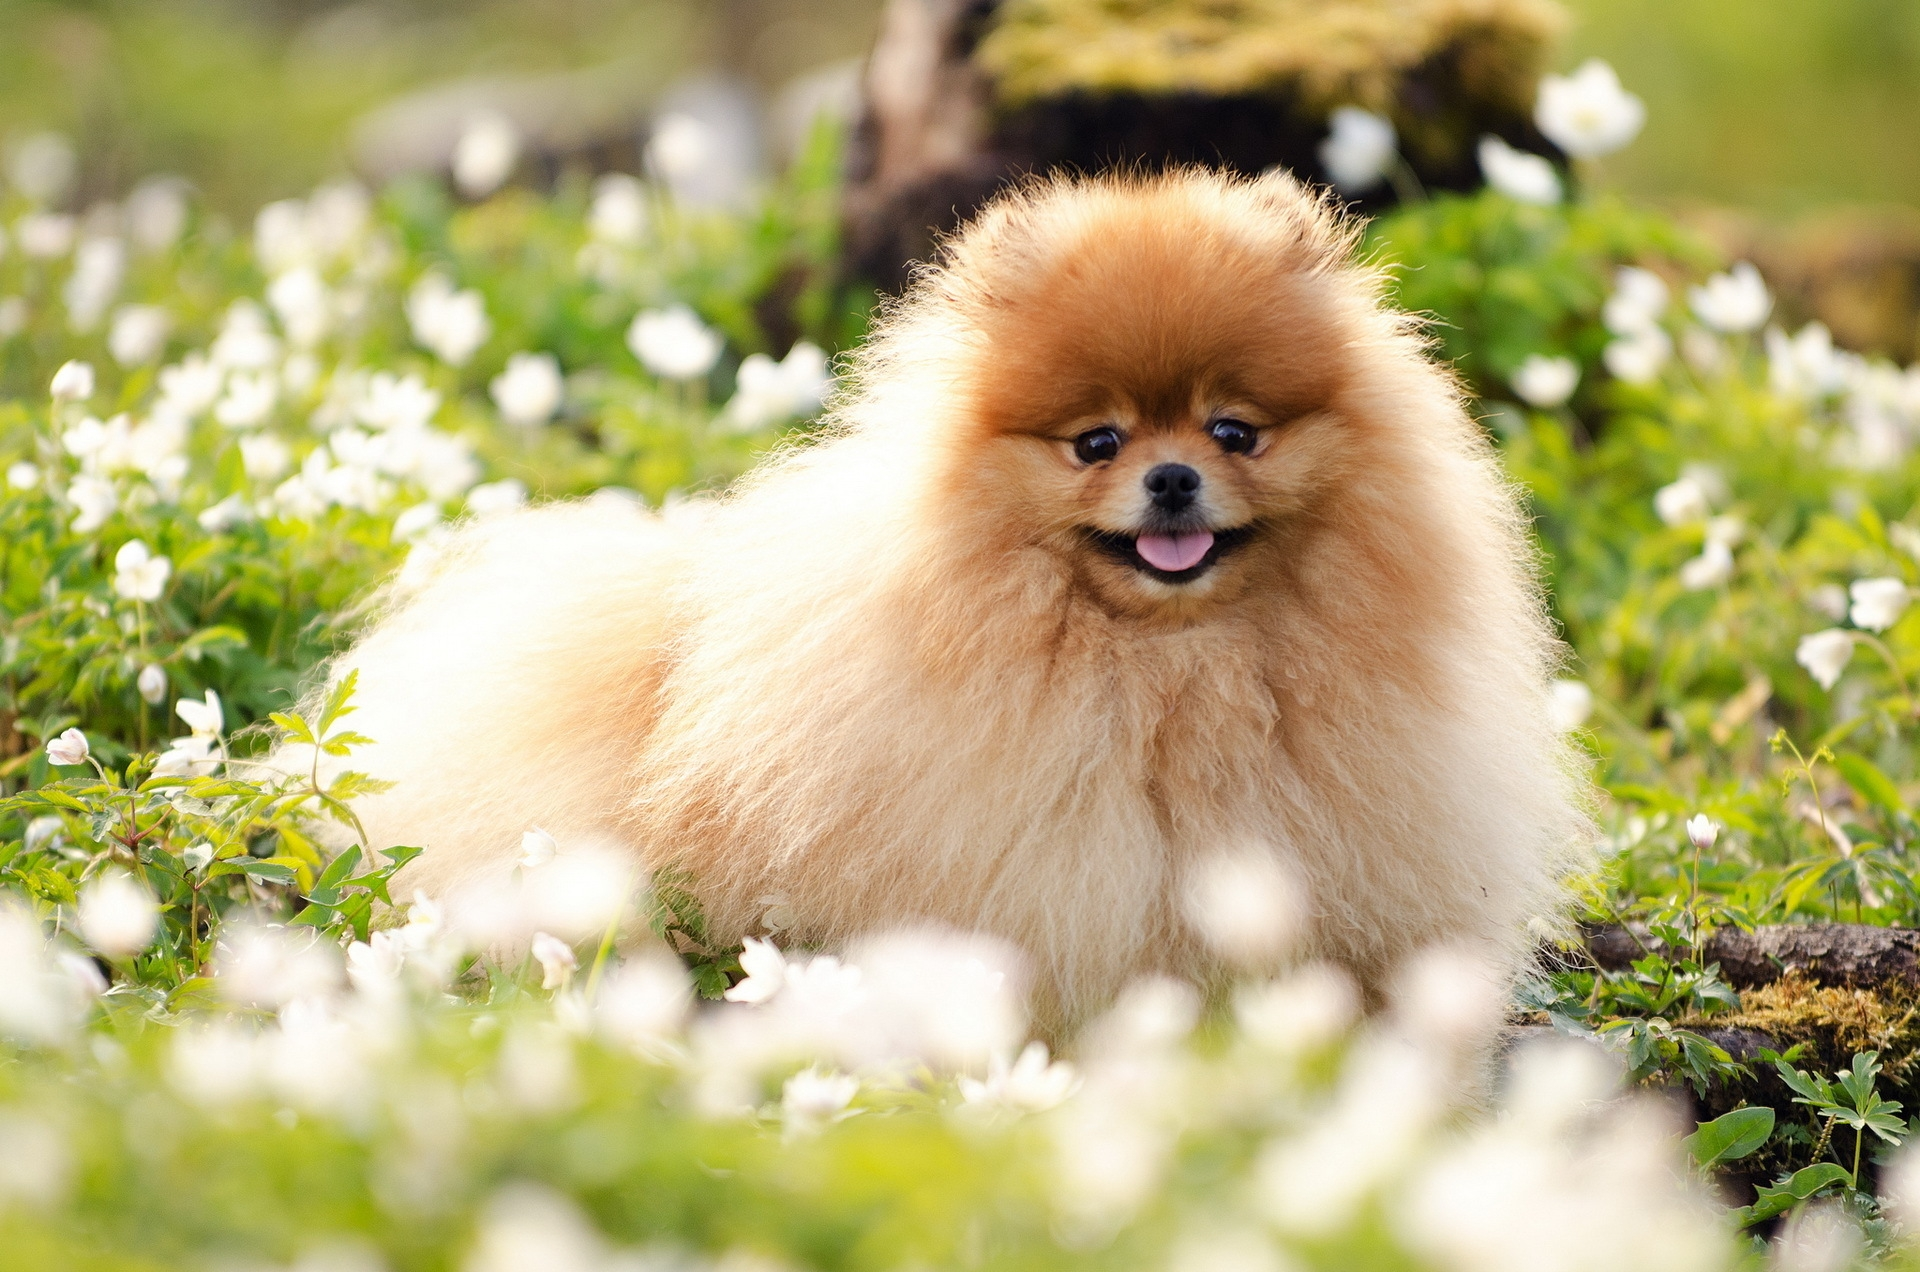 54416 download wallpaper Animals, Dog, Fluffy, Muzzle, Grass, Blur, Smooth screensavers and pictures for free